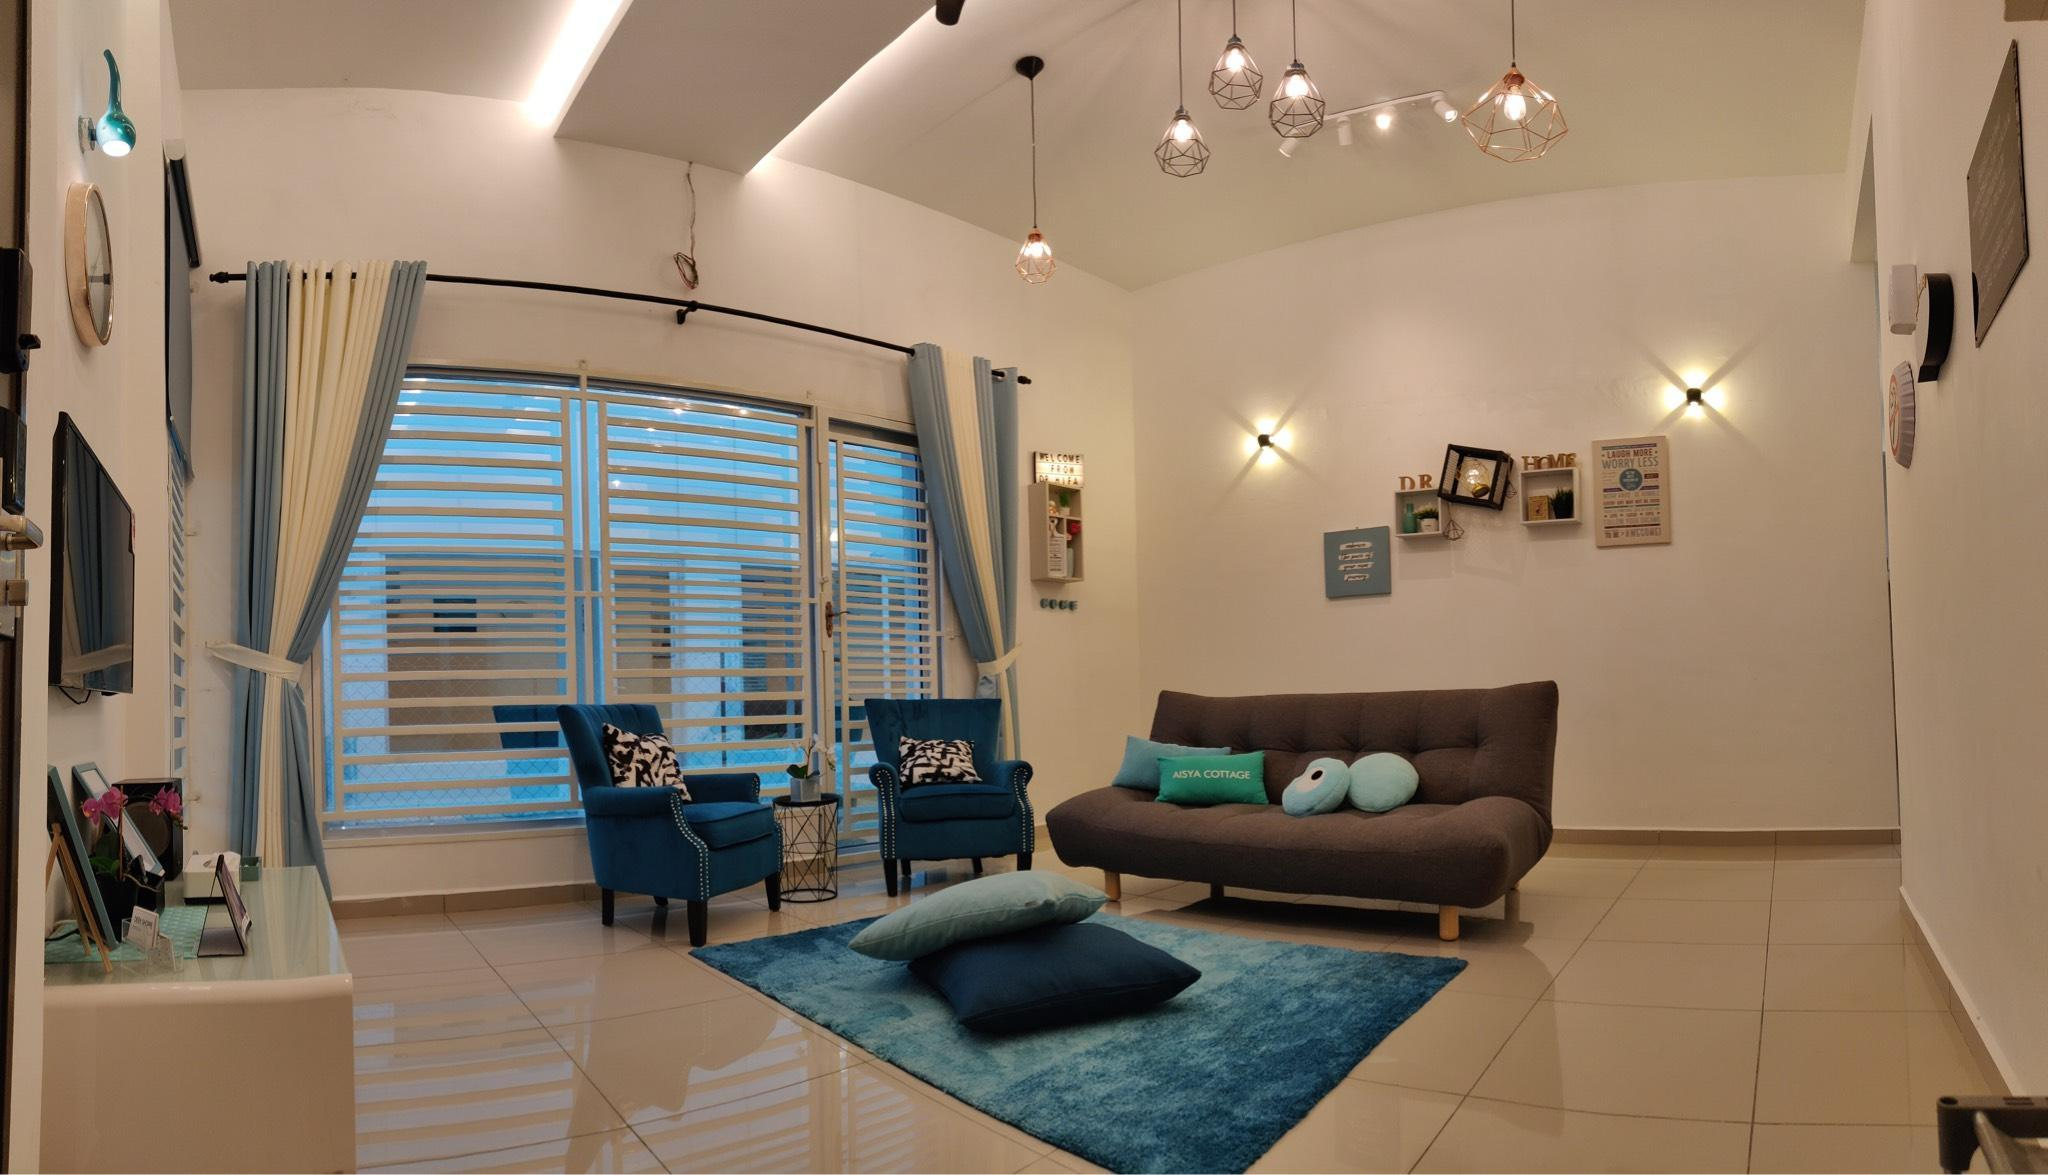 New House Aisya  With 4 Aircond Rooms + FREE WIFI